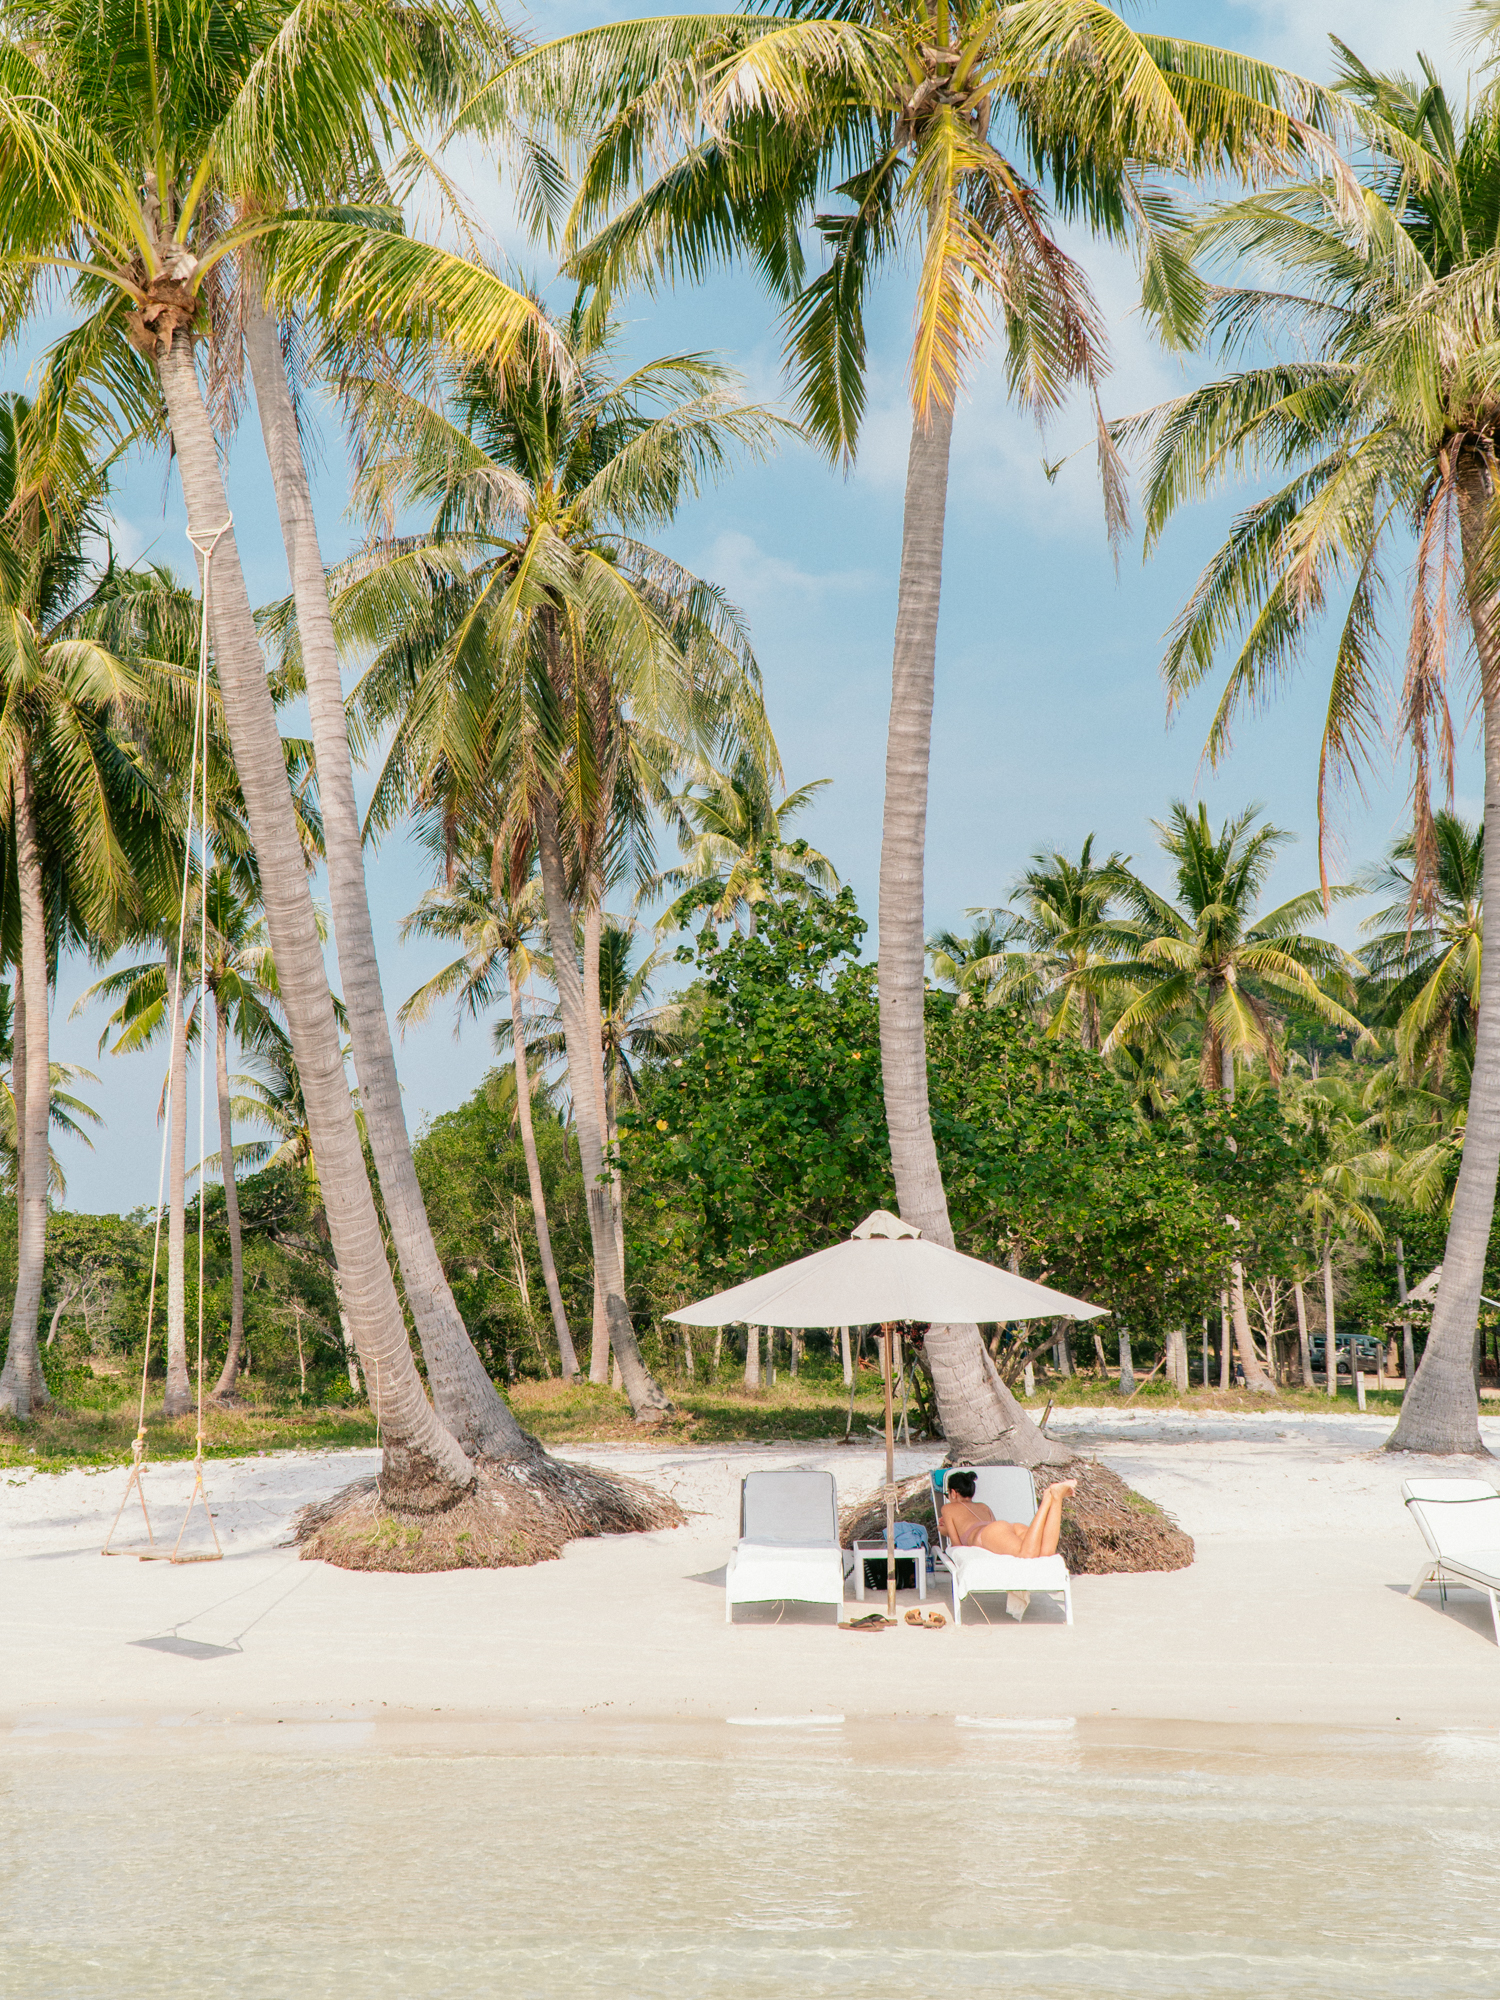 A guide on Phu Quoc Island